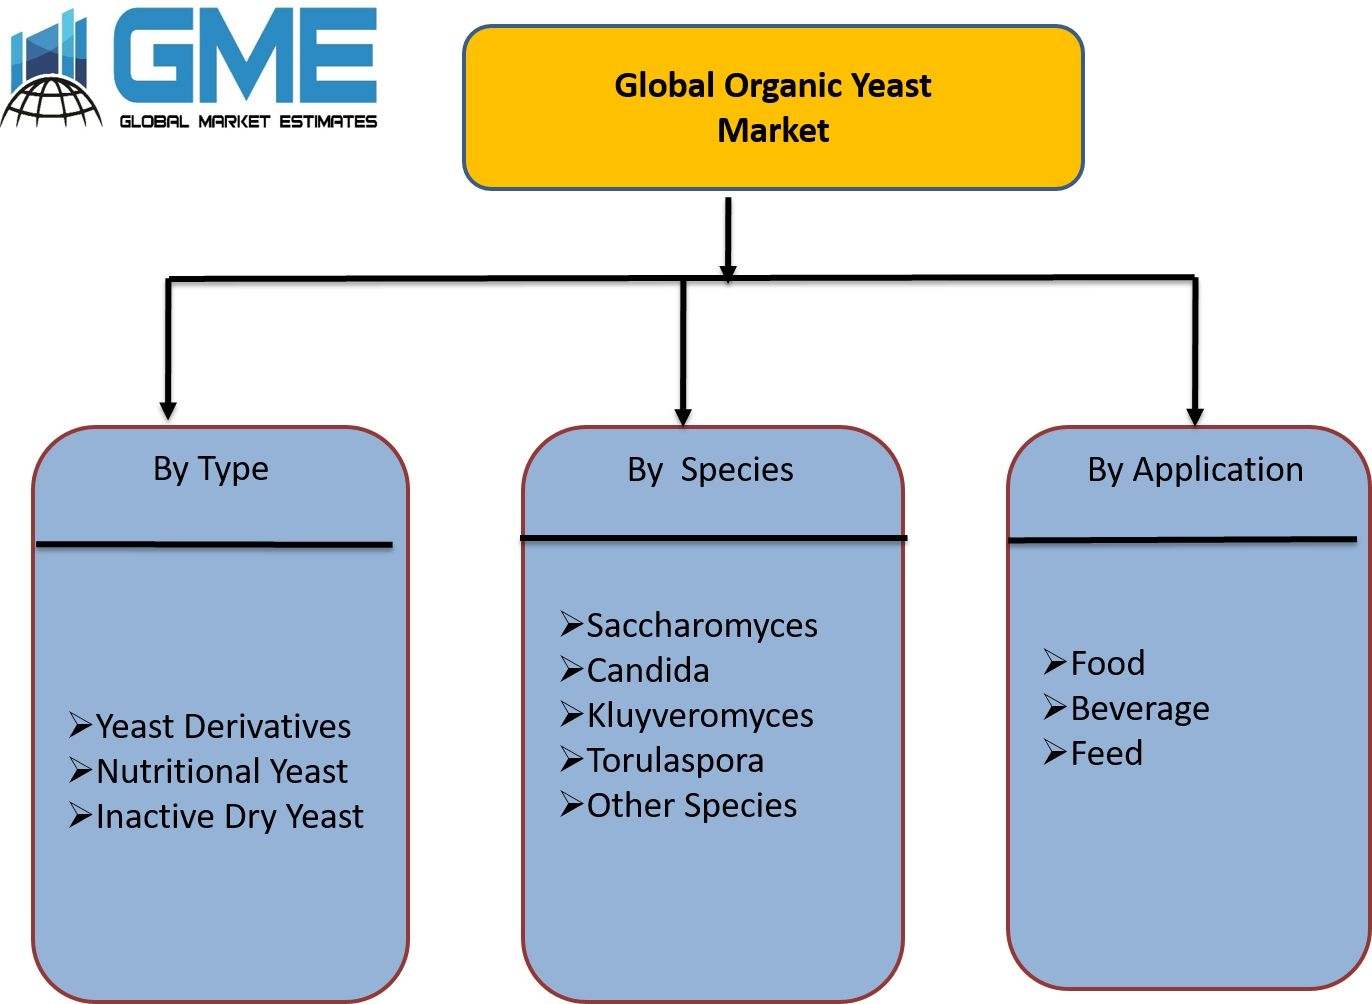 Global Organic Yeast Market Segmentation